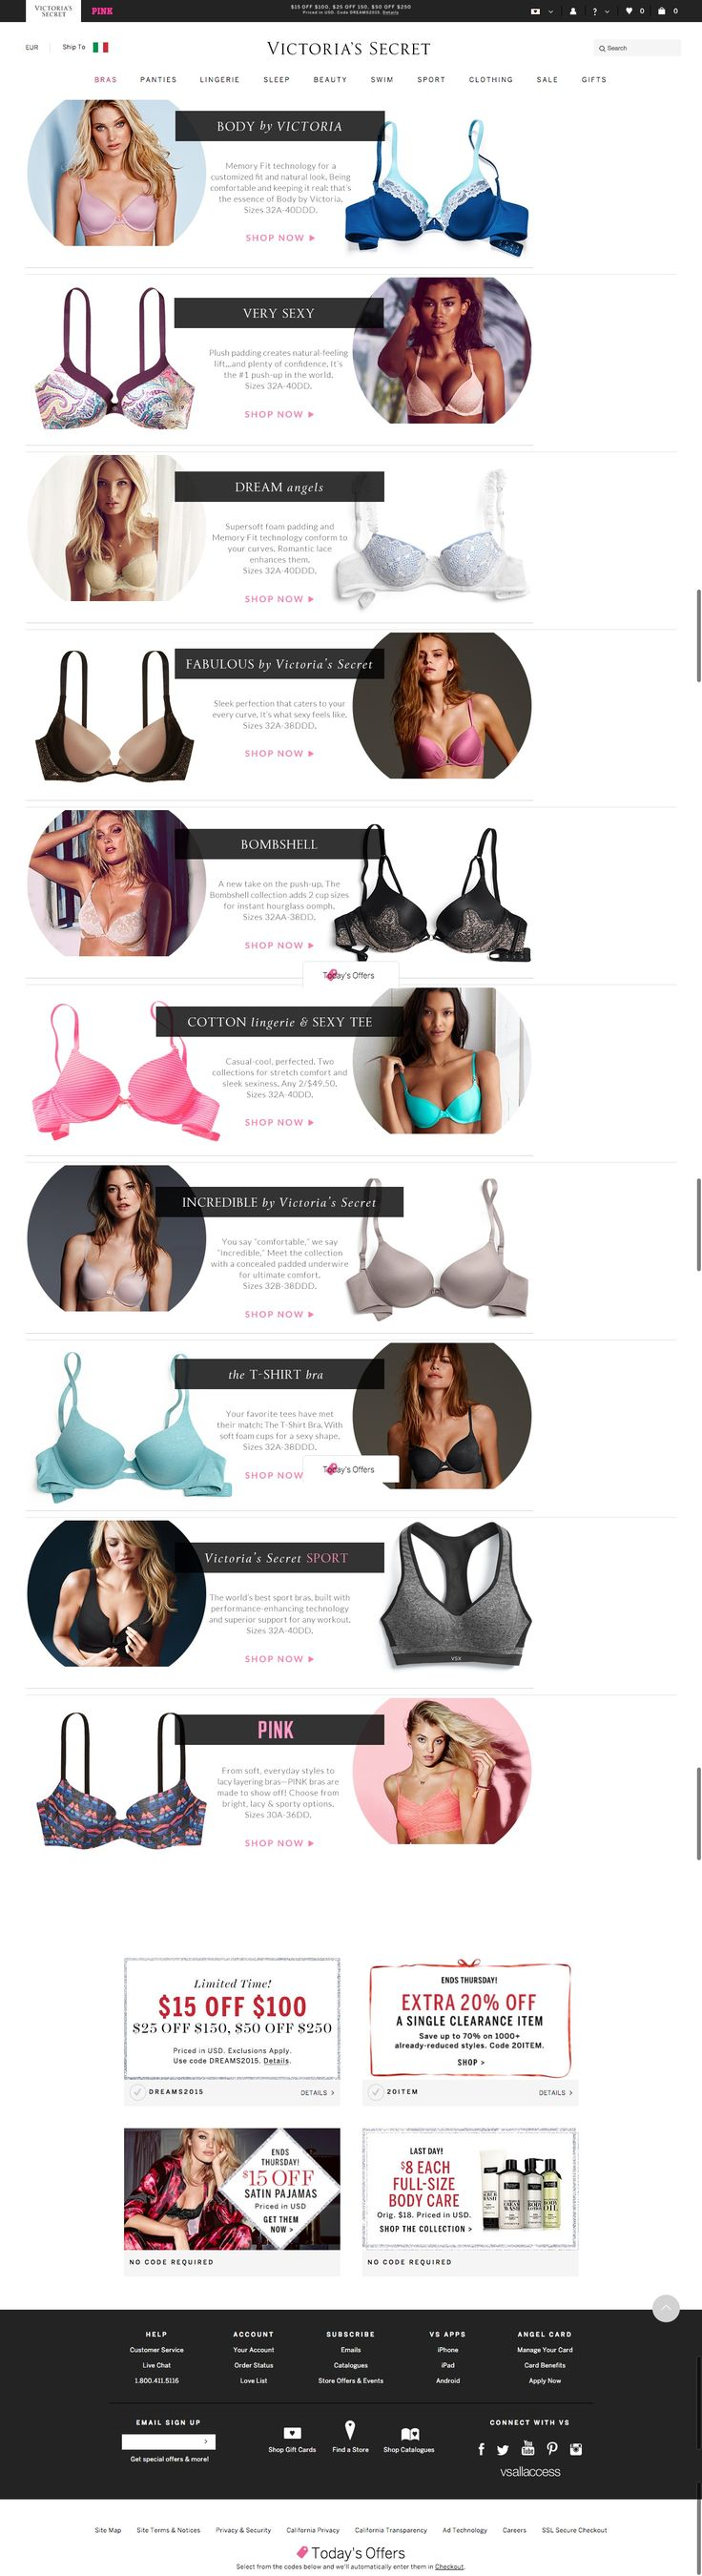 #shoppingGuide VS - The Angel Bra Guide - Compare Our Collection